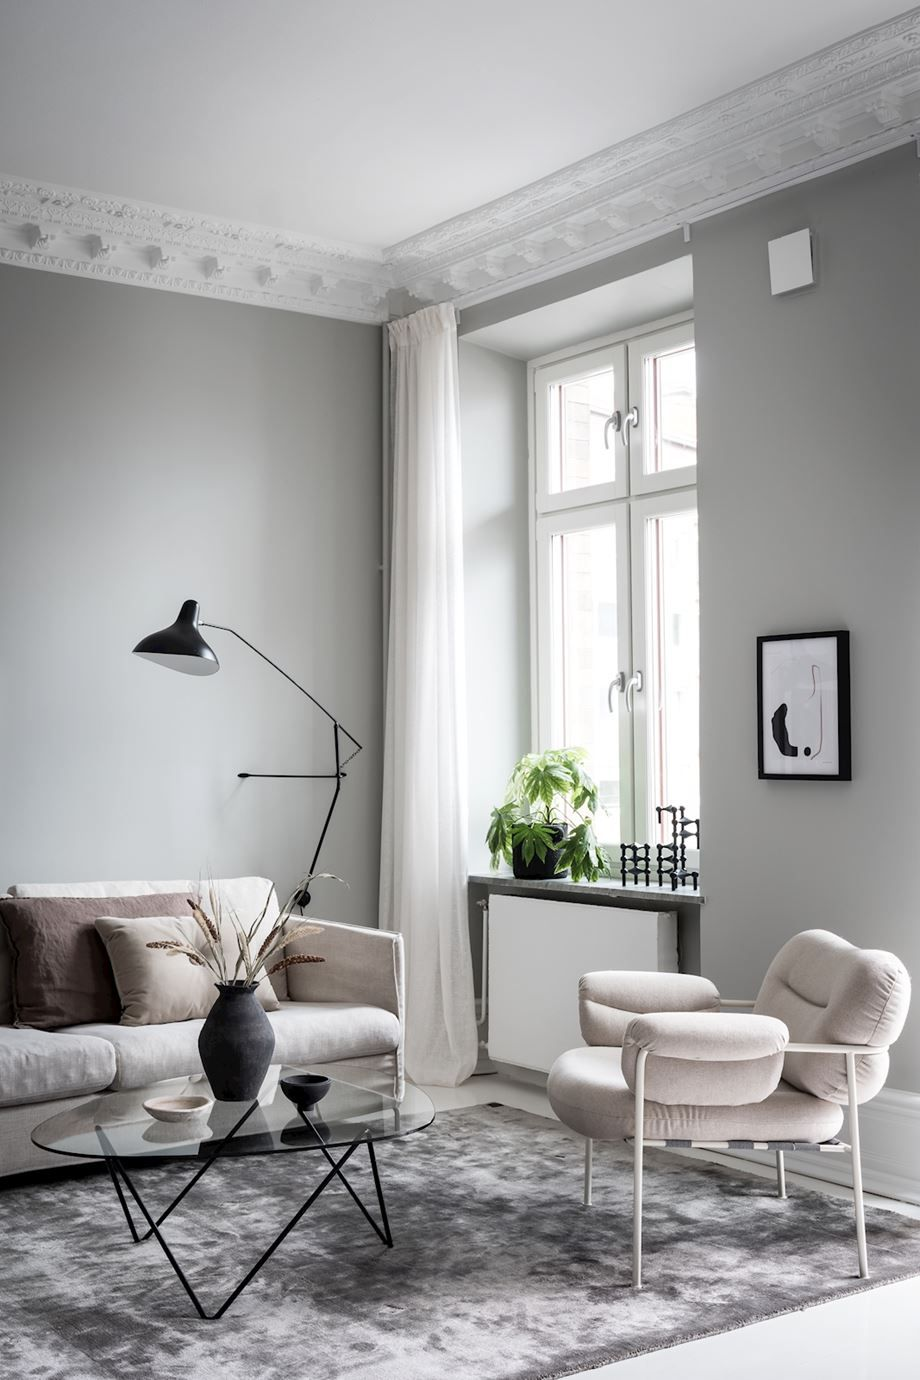 Feng Shui simplicity in a living room